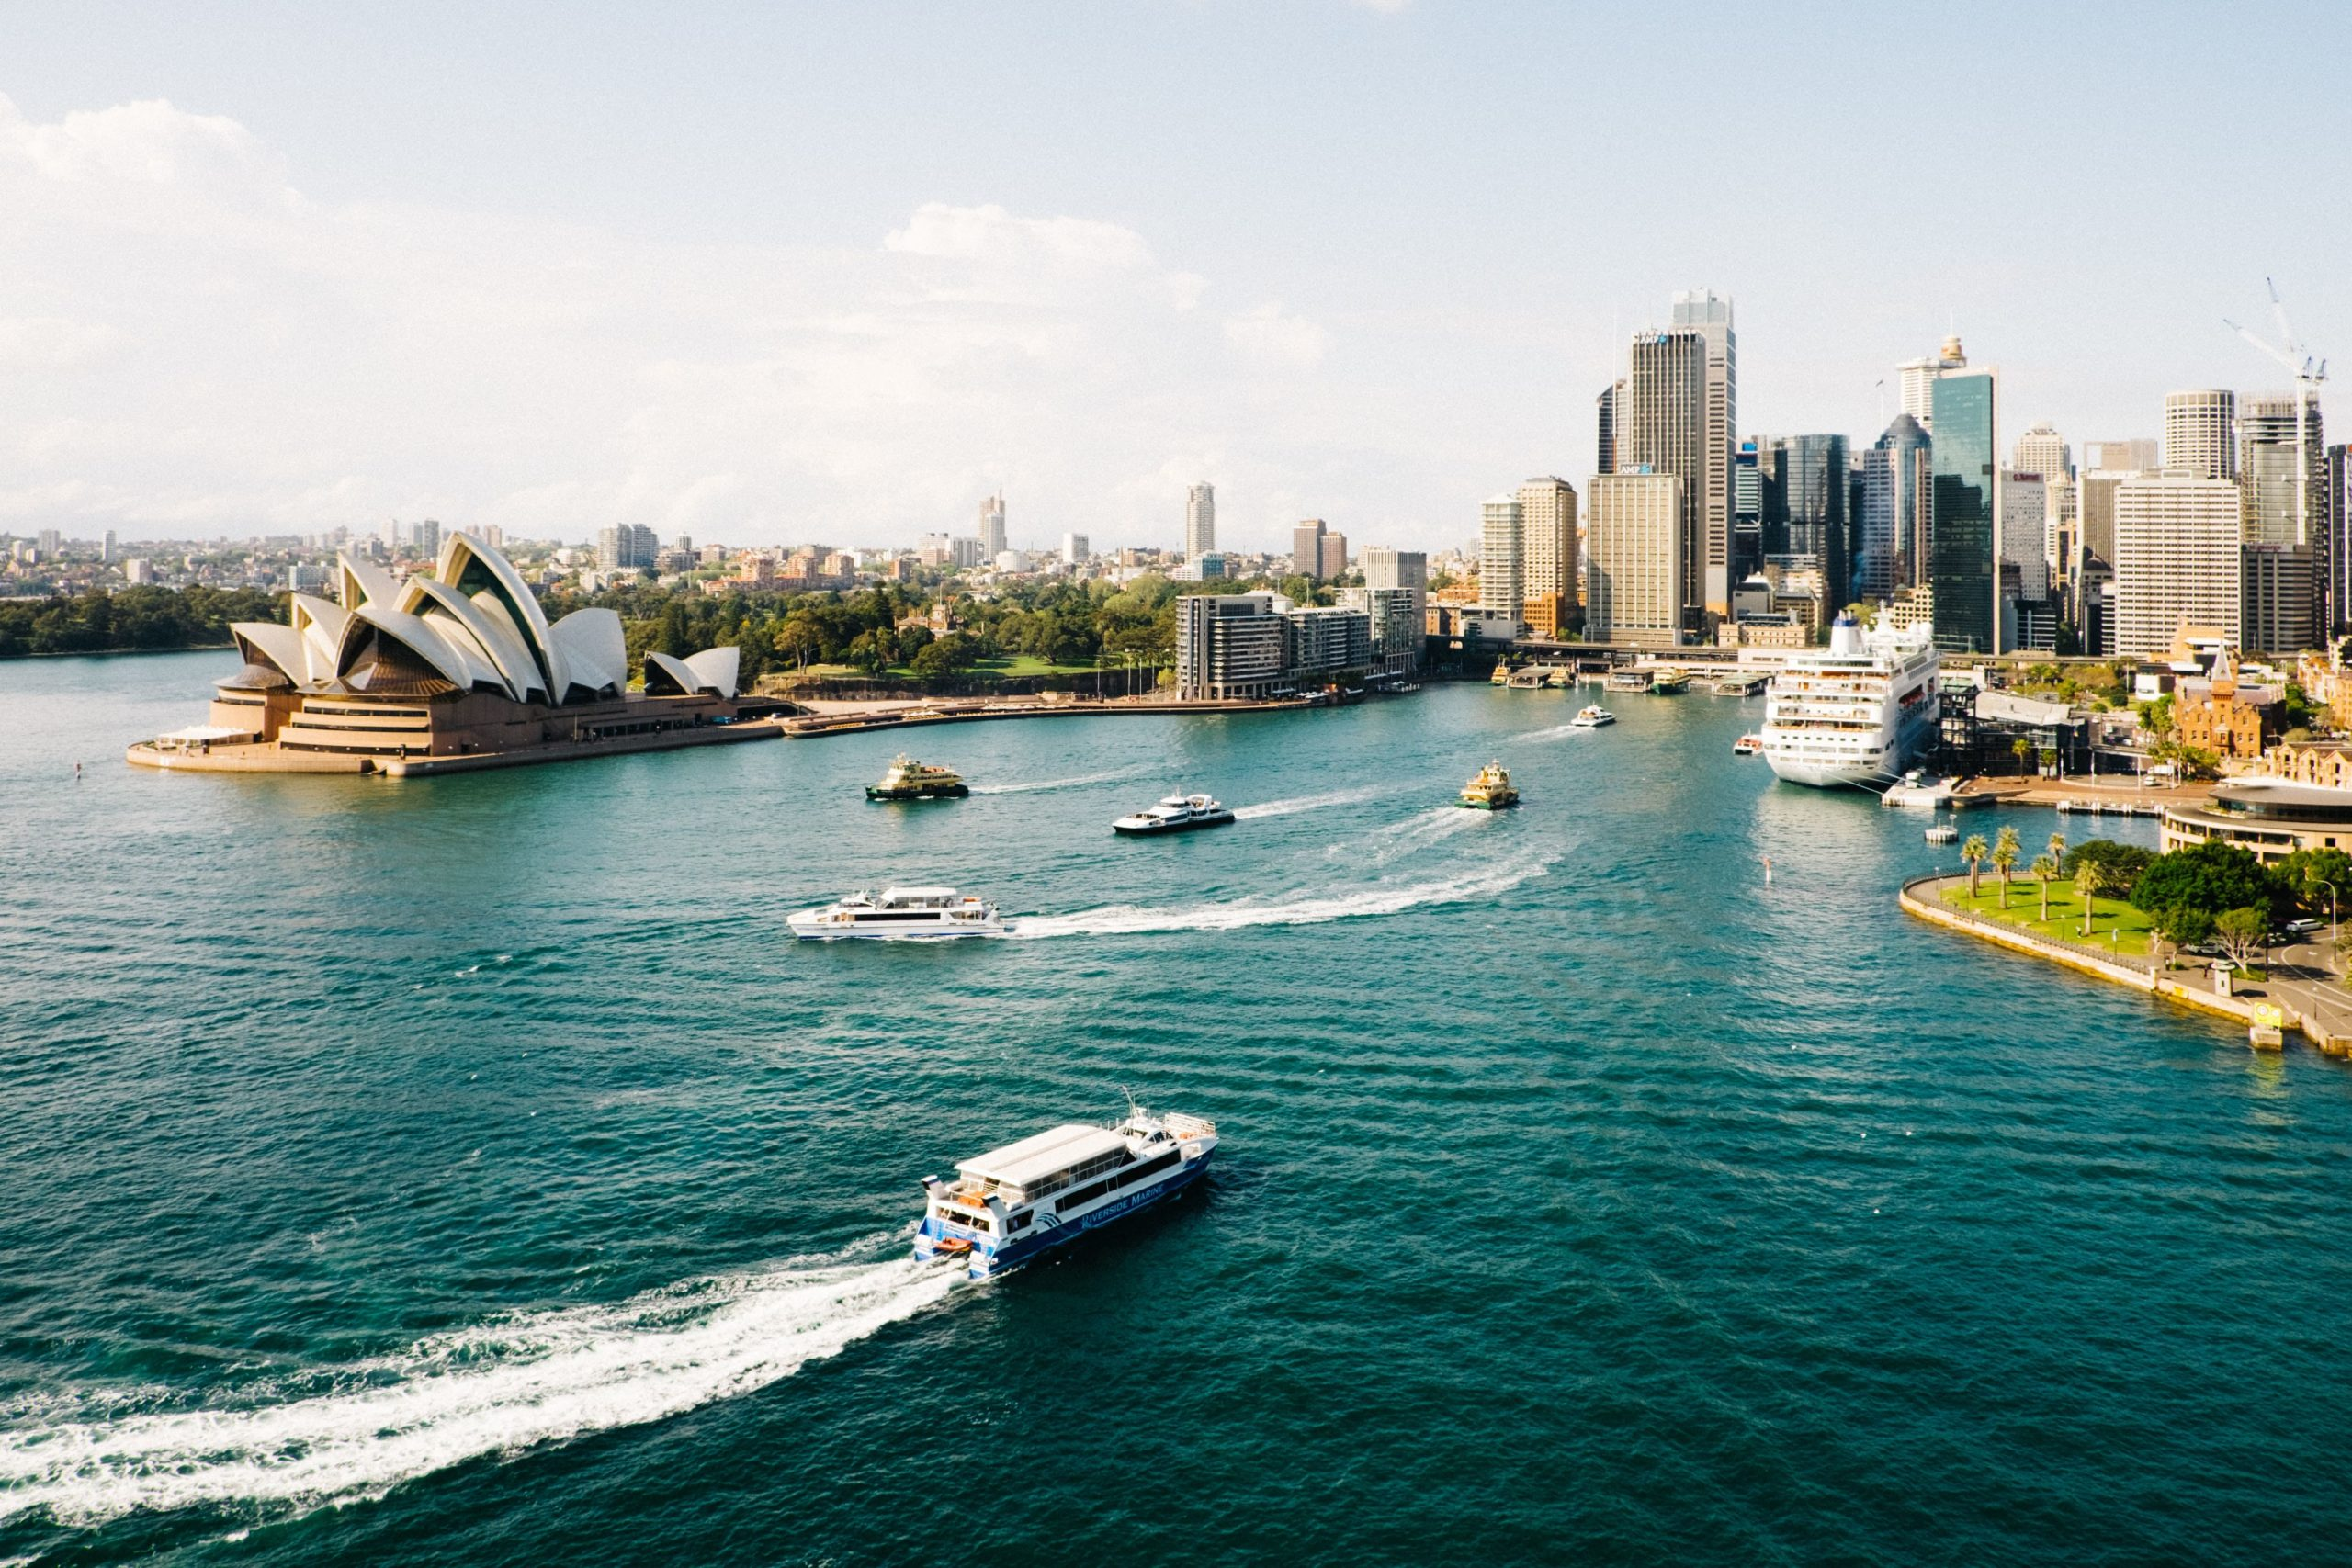 Australia And Singapore Are In Talks About An Air Travel Bubble